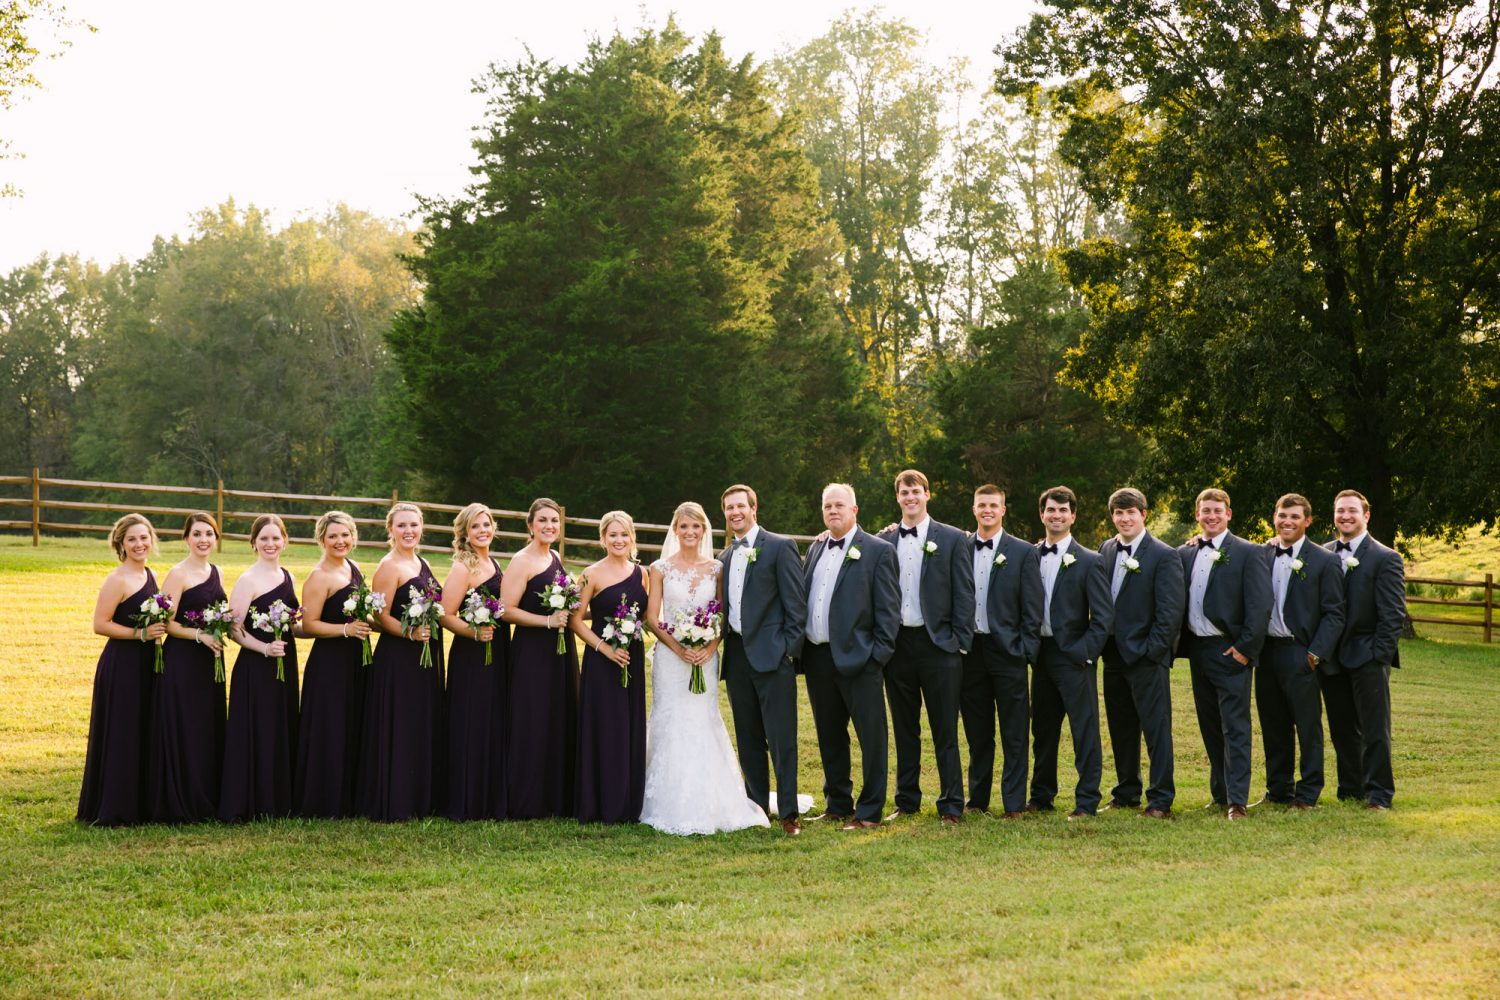 Waynesville, NC Wedding Photography | Full Bridal Party Portrait